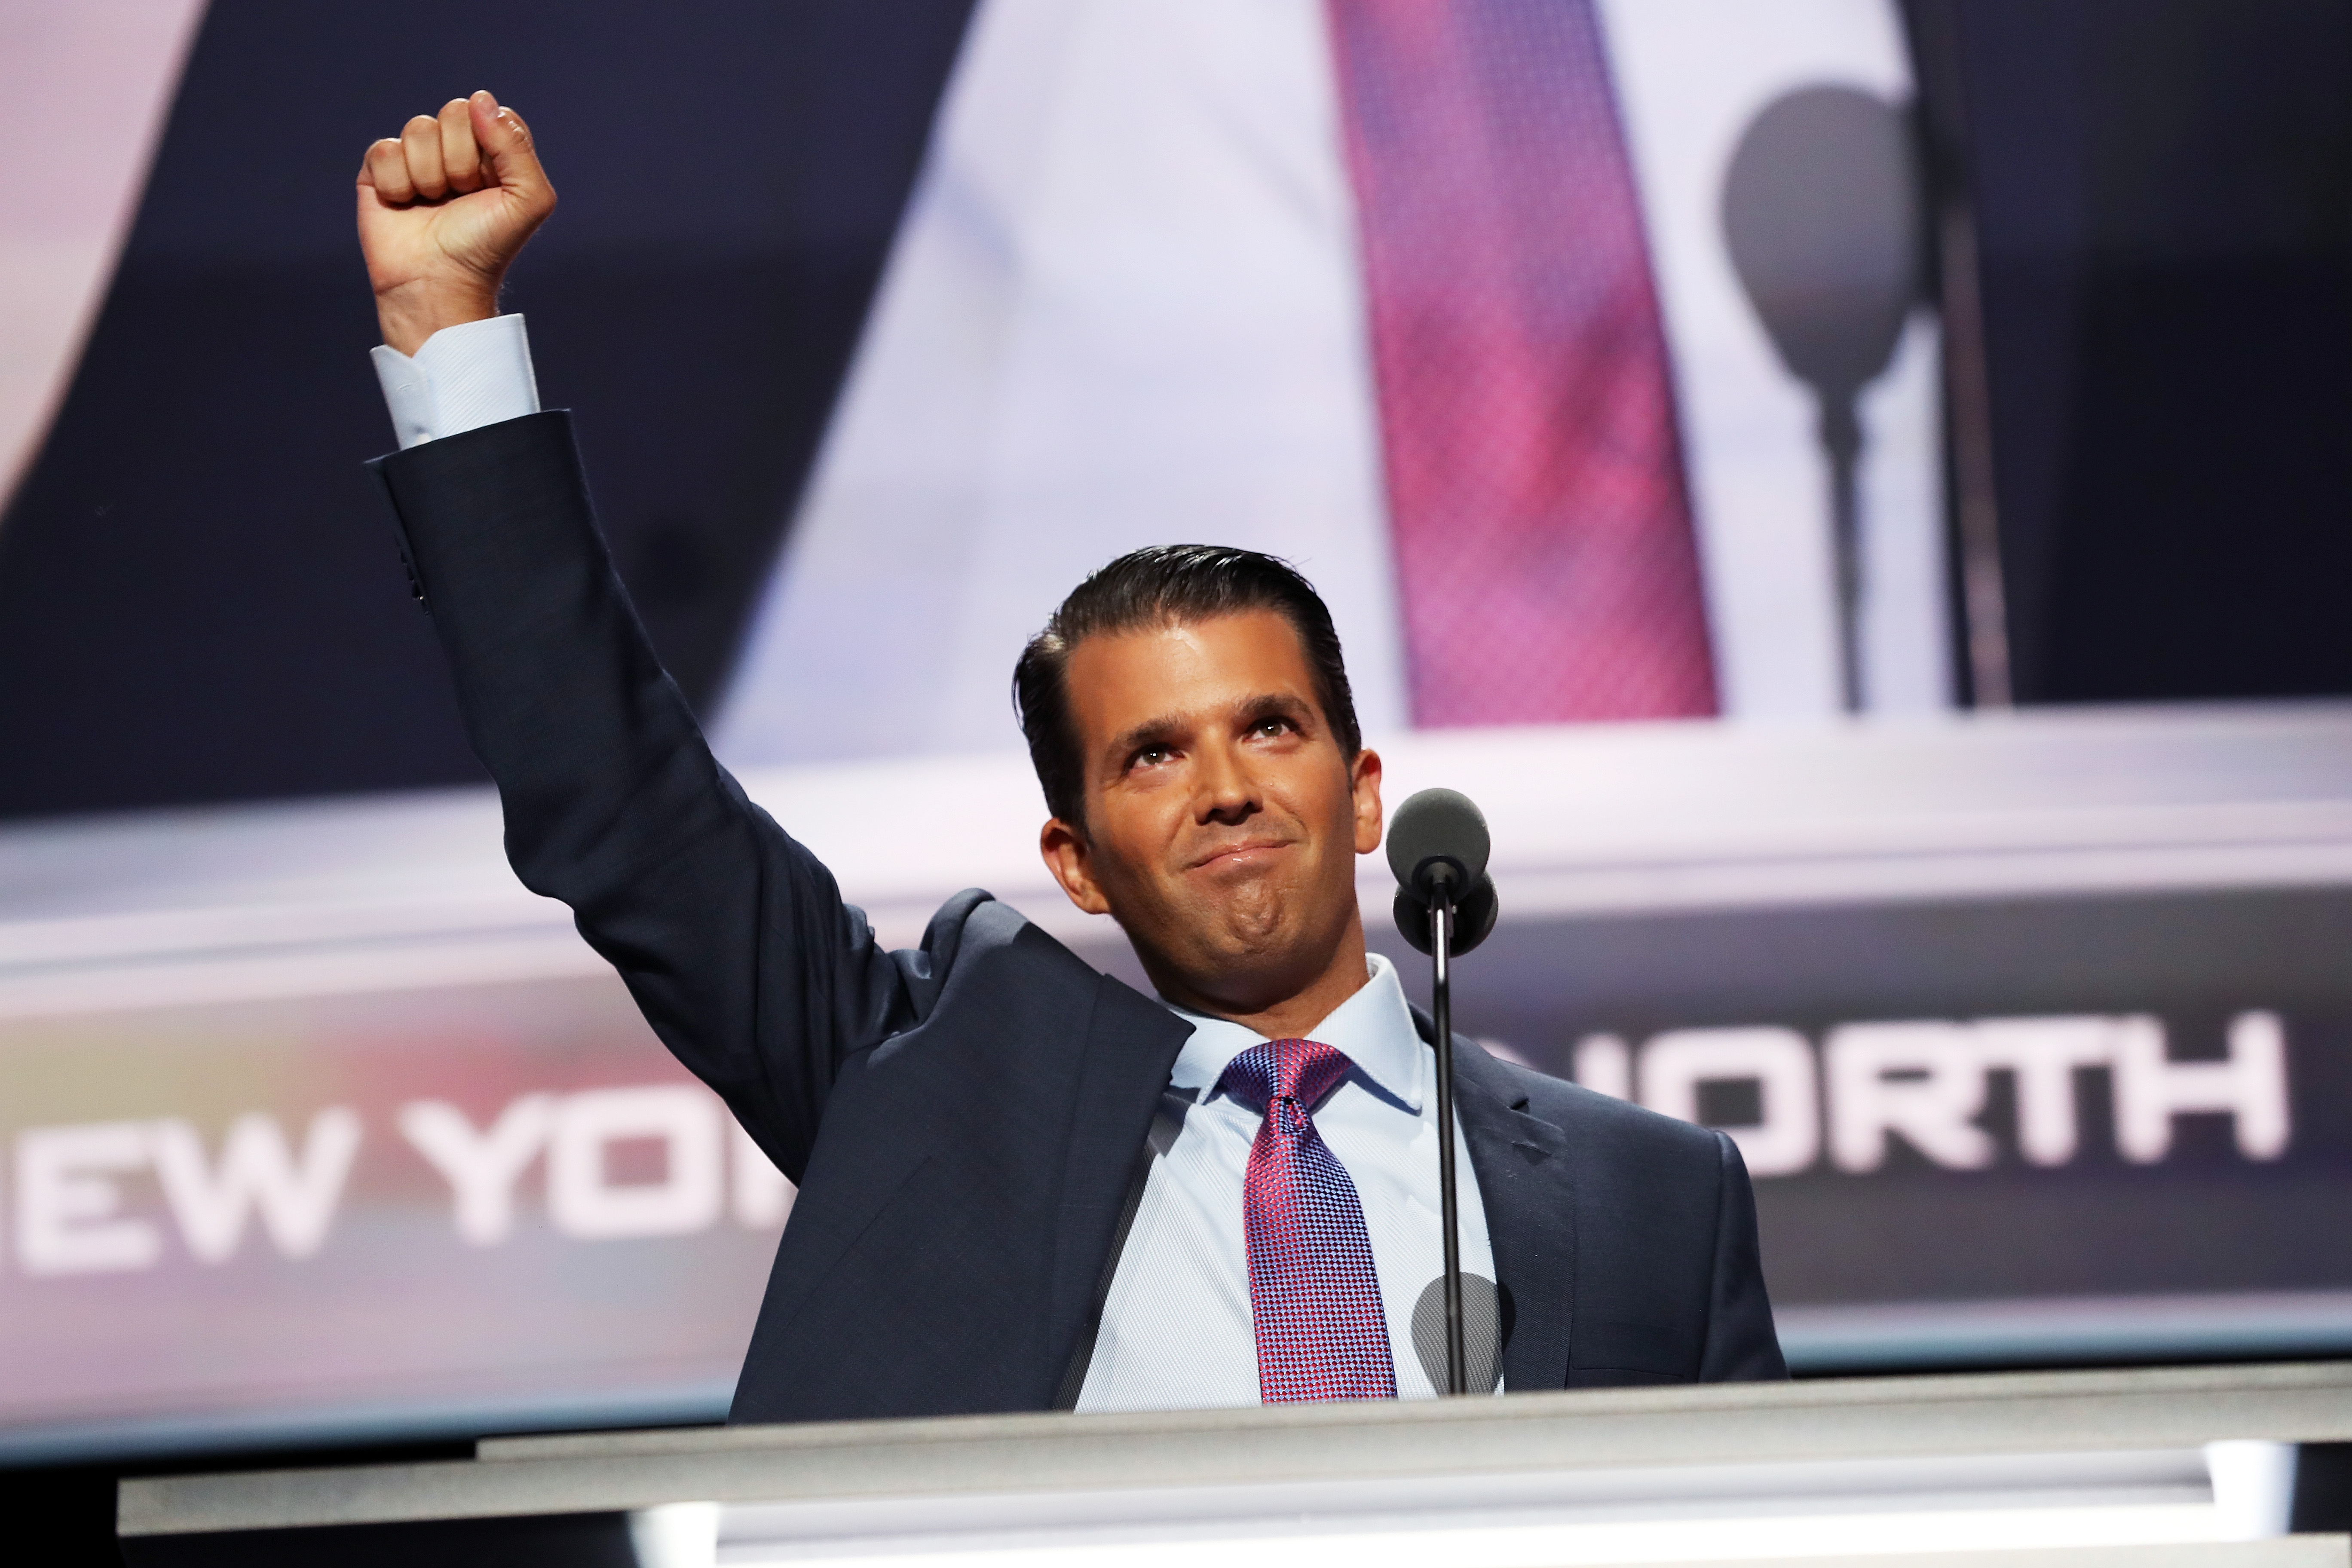 Donald Trump Jr. gestures to a crowd at the Republican National Convention in Cleveland.